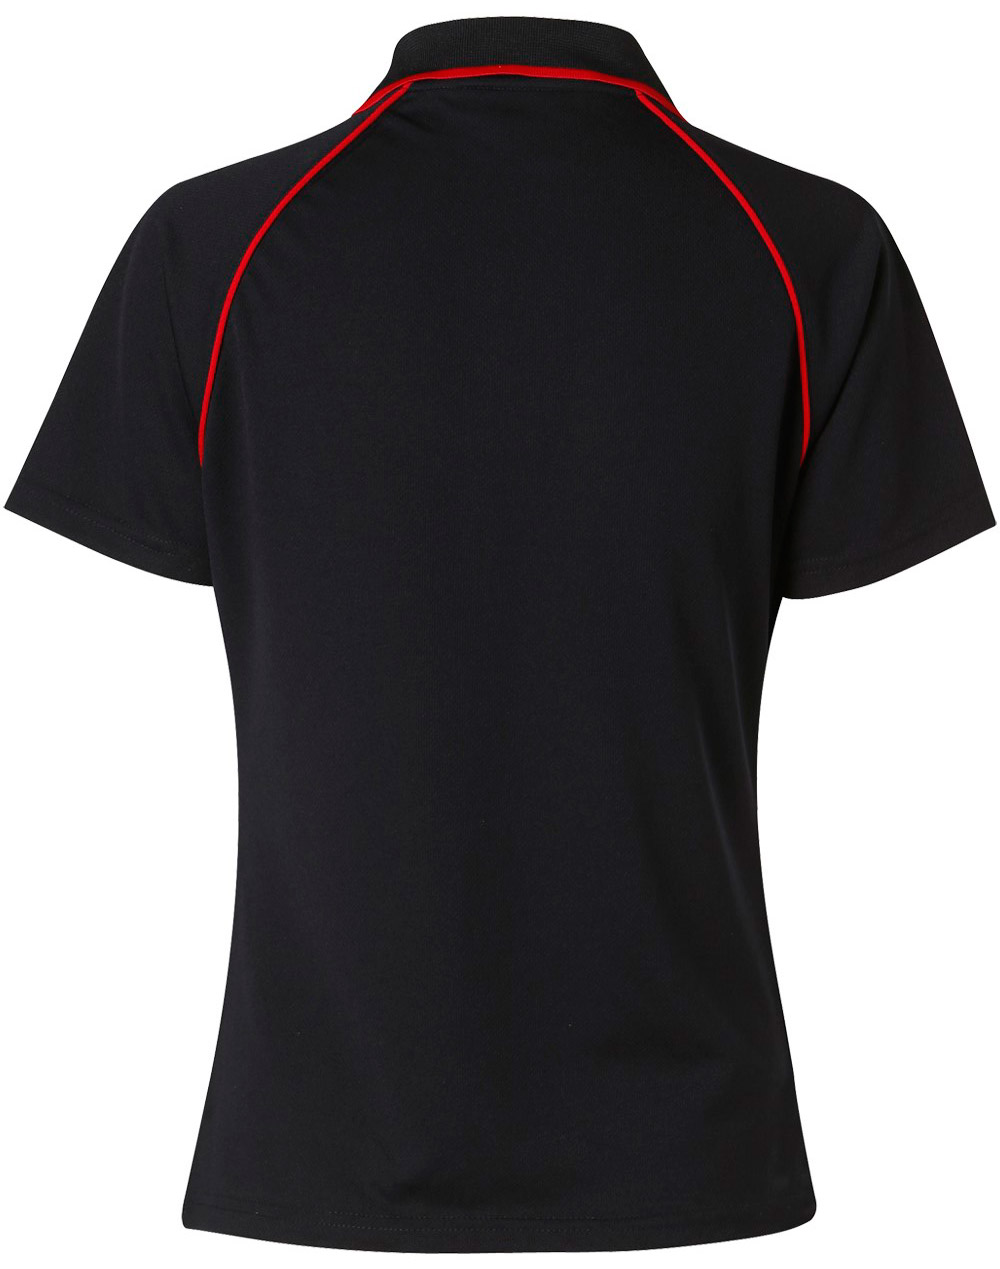 https://s3-ap-southeast-1.amazonaws.com/ws-imgs/POLOSHIRTS/PS19_Navy.Red_Back.jpg